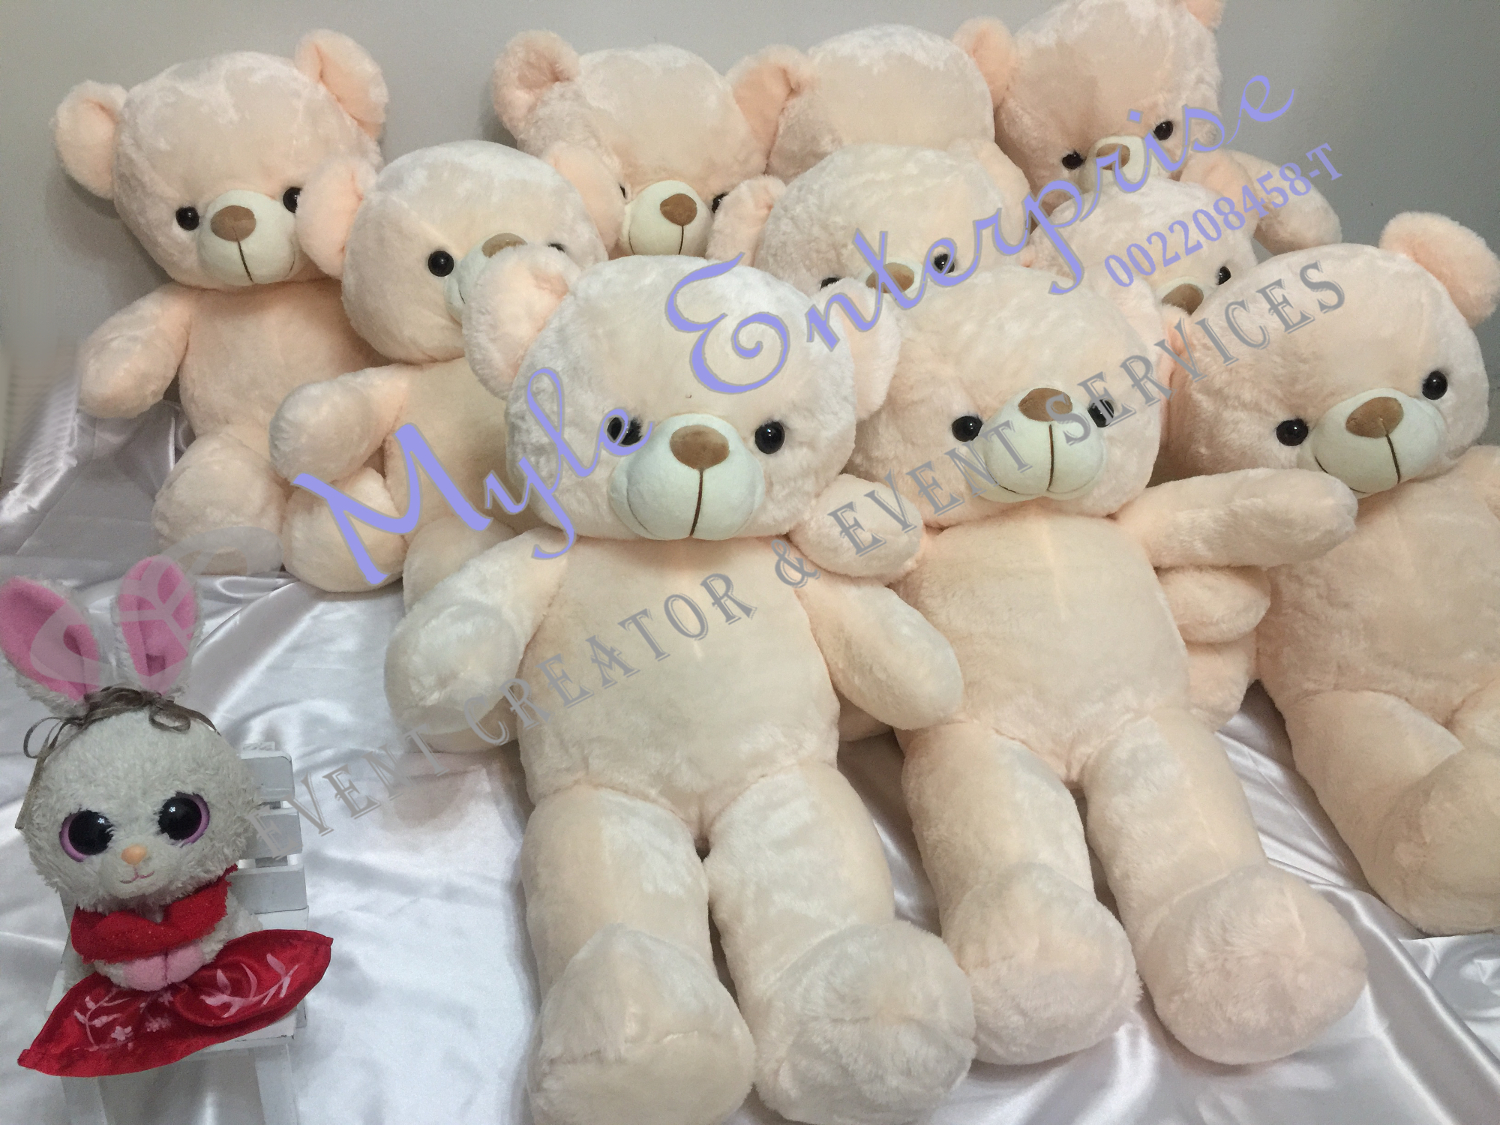 Customed event items, this one are bears for events by Myle Enterprise